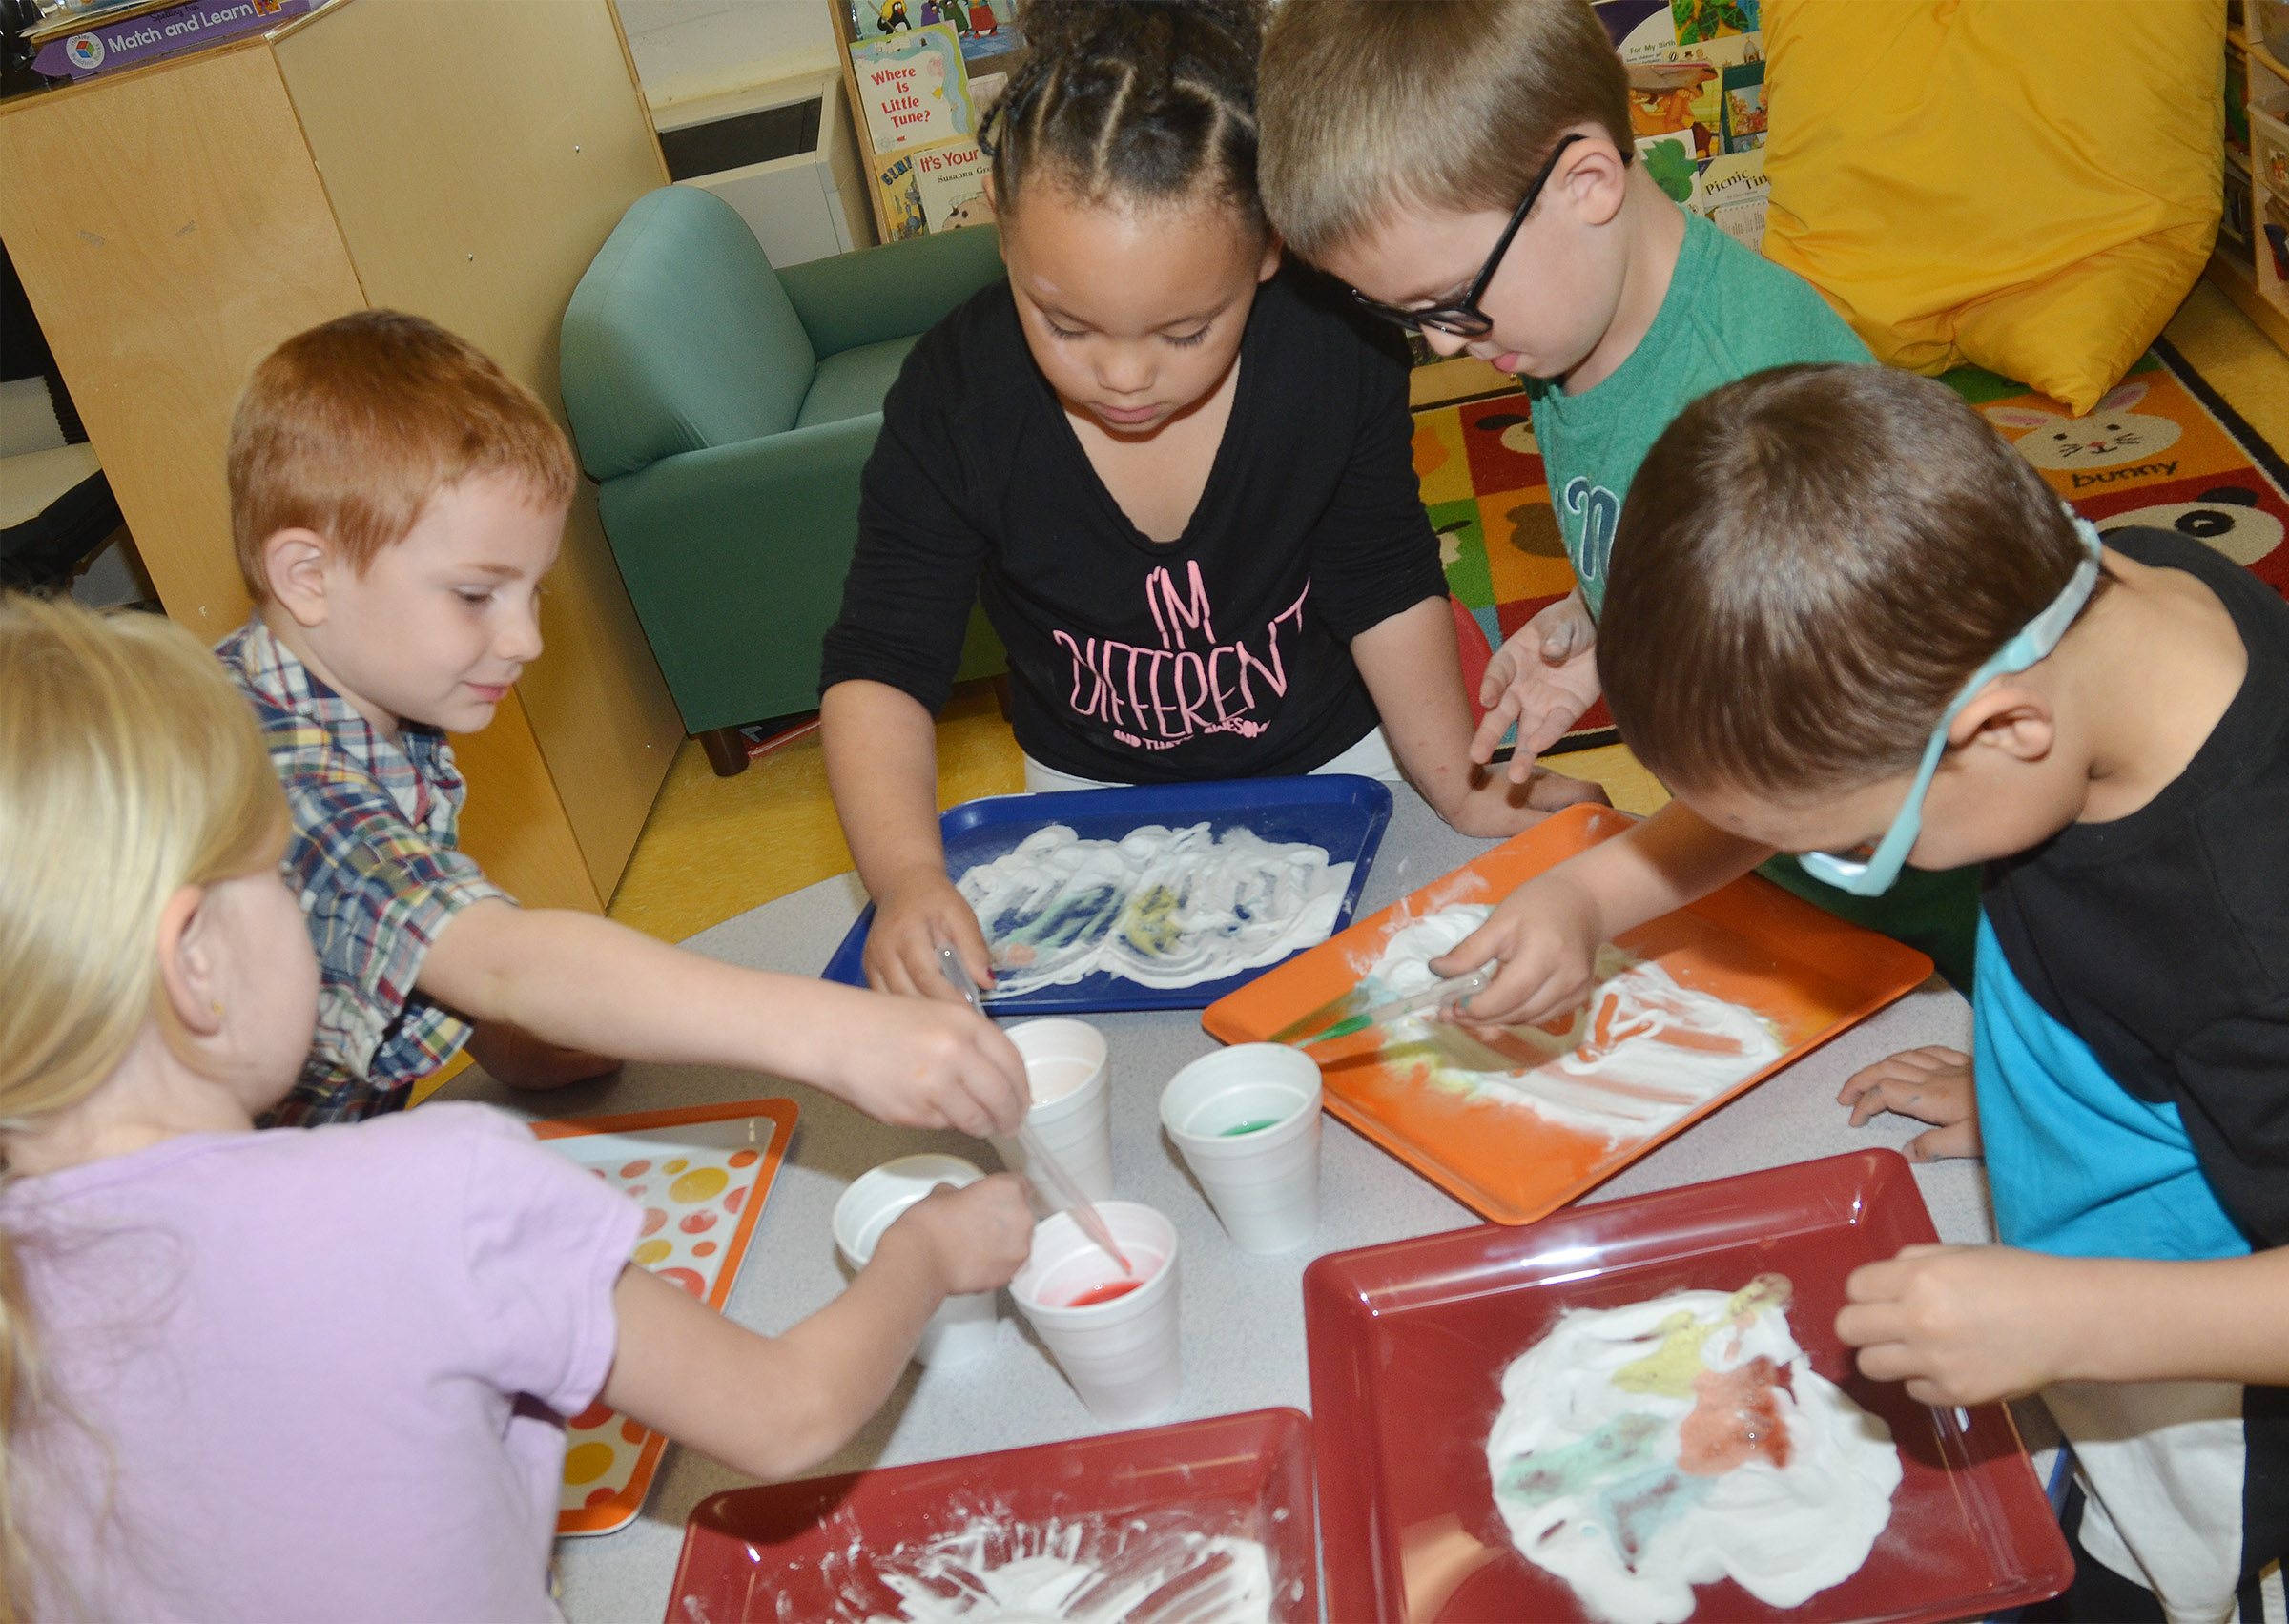 From left, CES preschool students Alinna Bray, Kennon Dotson, Lillian Merriweather, Reece Williams and Chanler Mann add colored vinegar to baking soda to see its reaction.